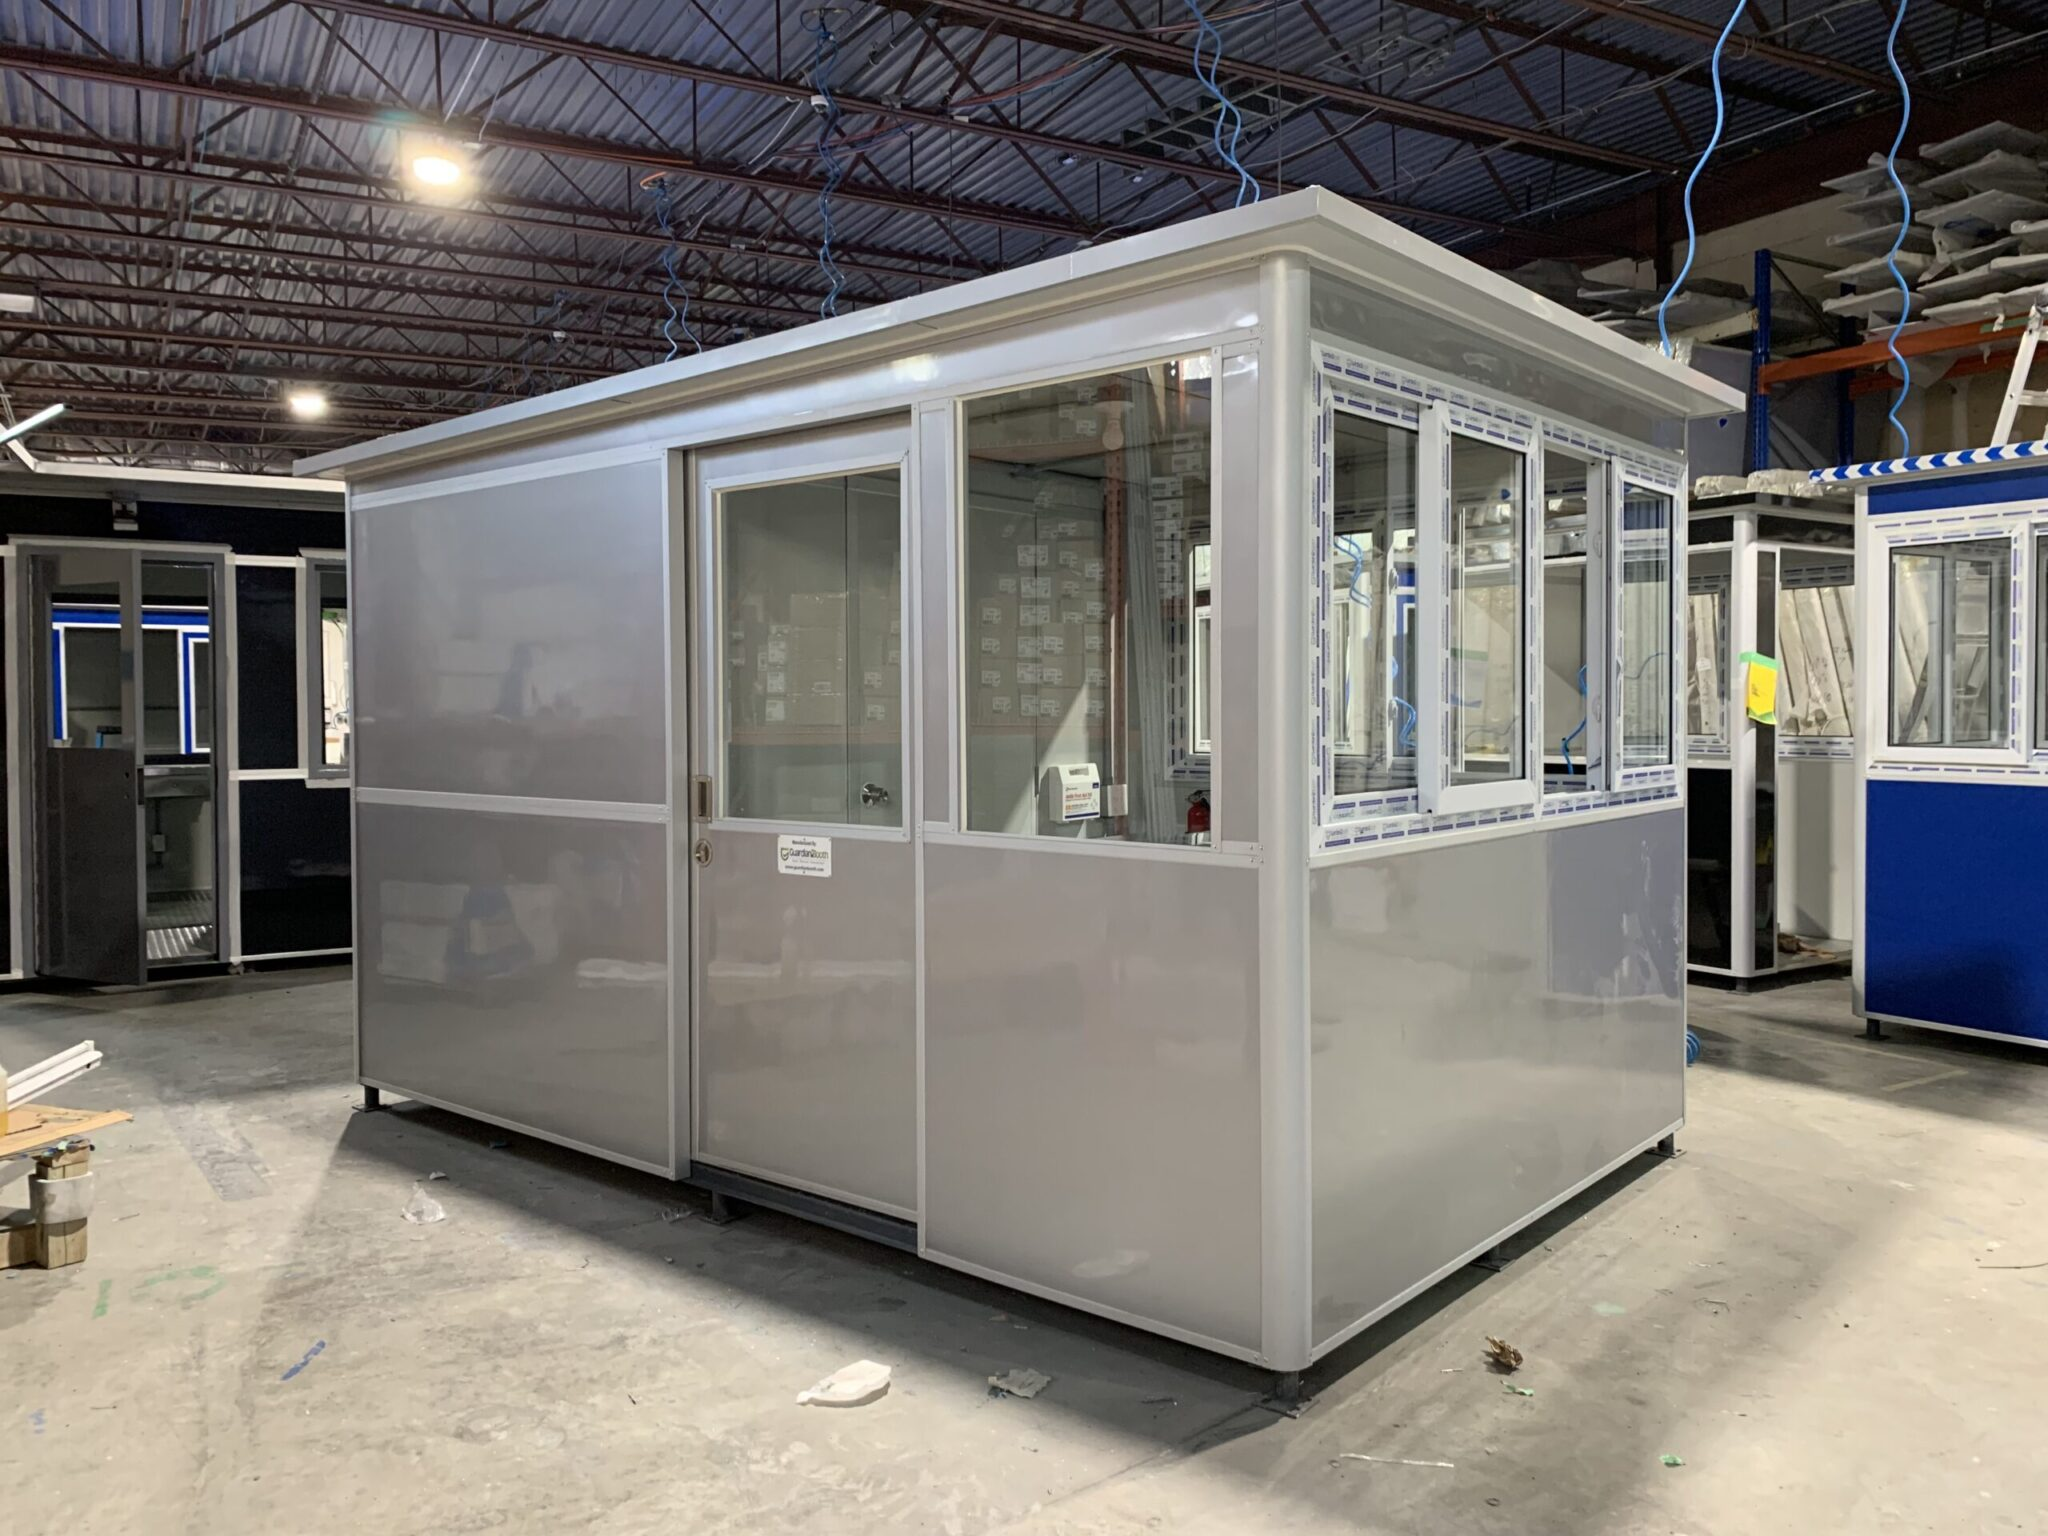 8x12 Security Guard Booth in Talladega, AL with Pitched Roof, Sliding Door, ADA Compliant, and Restroom